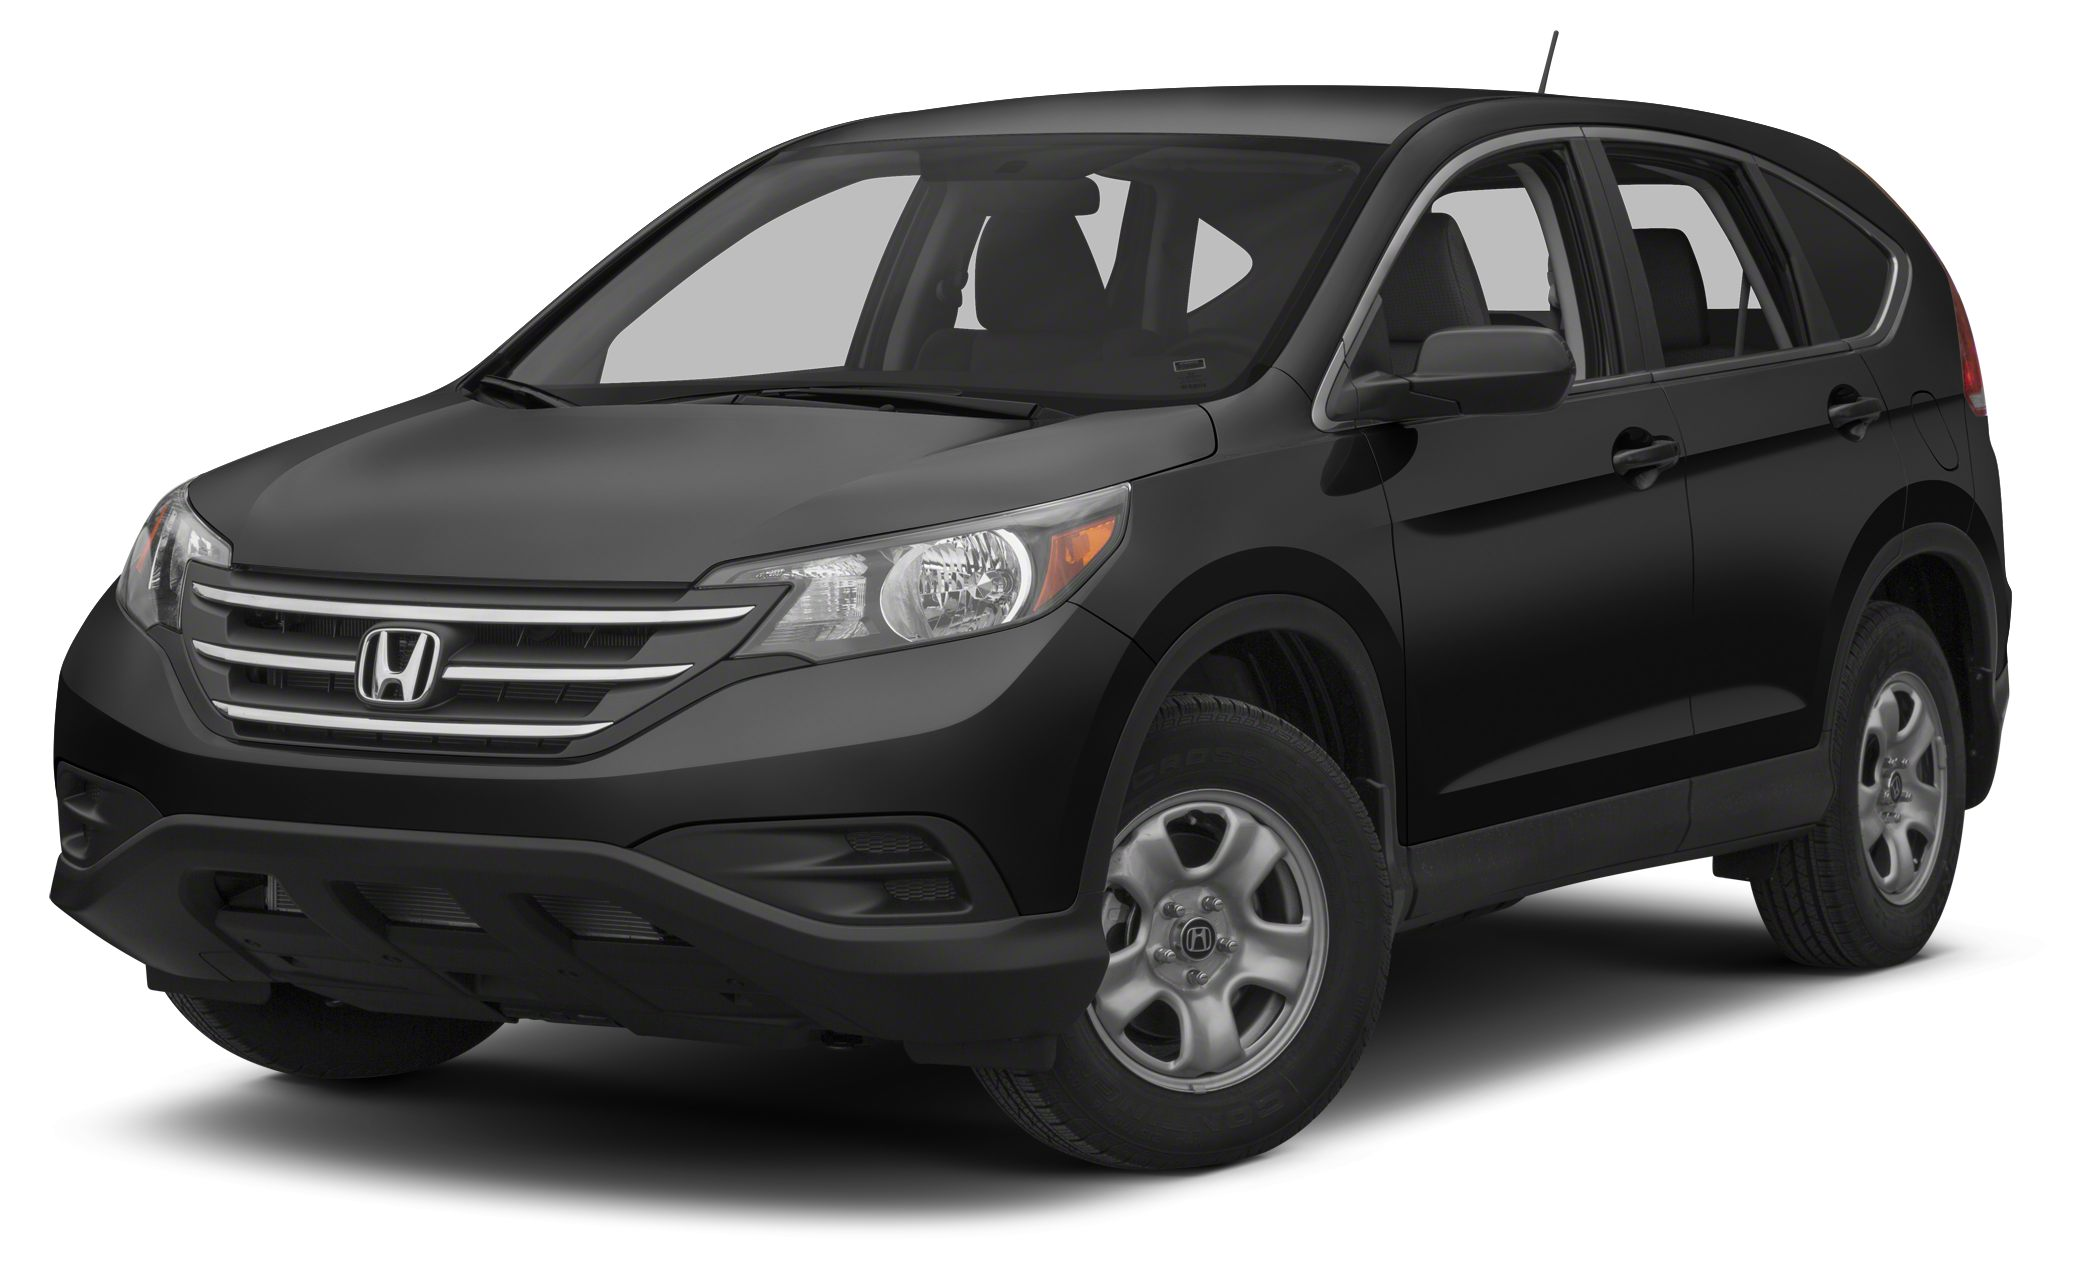 2013 Honda CR-V LX All Wheel Drive Are you READY for a Honda There isnt a better SUV than this